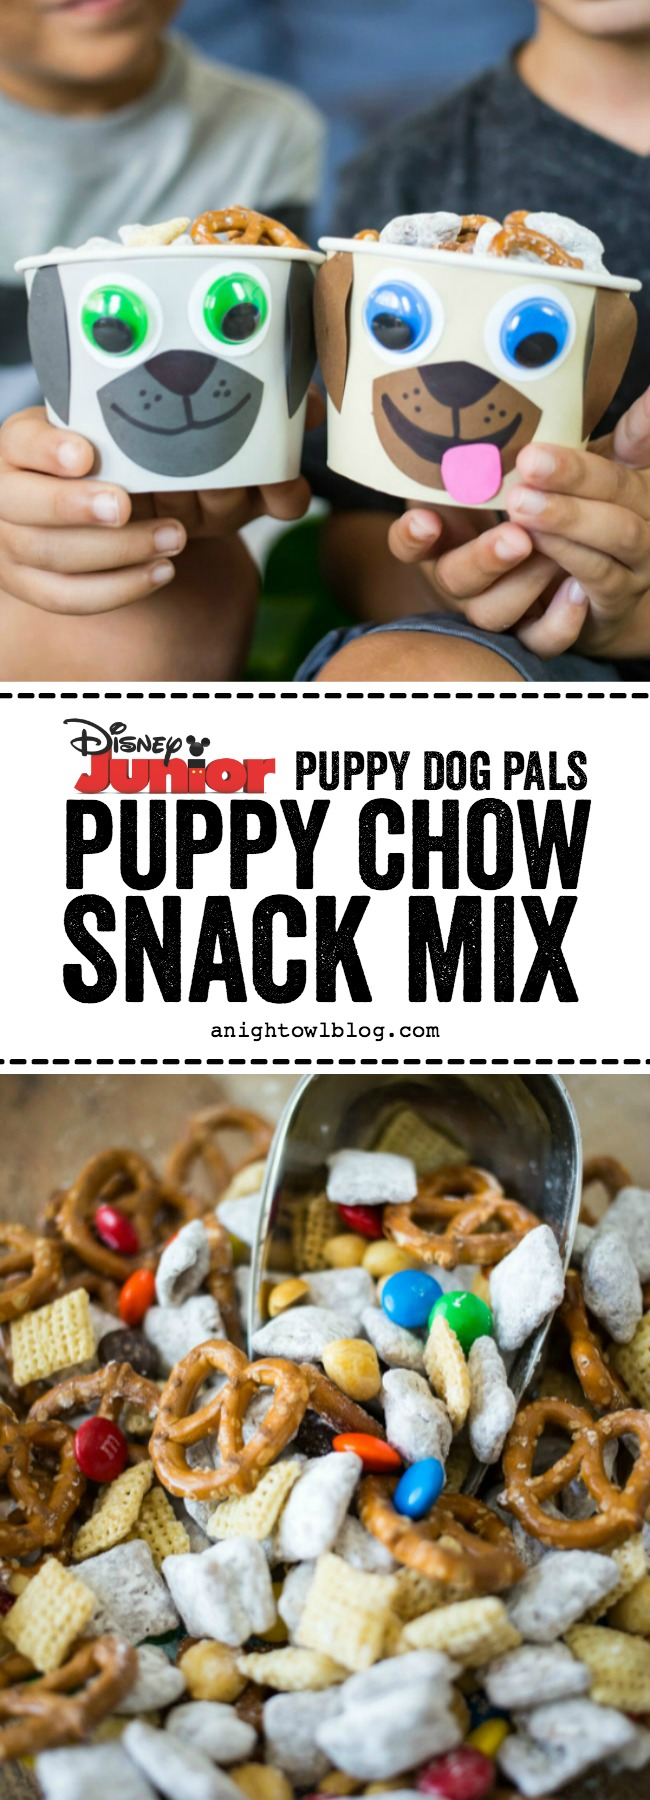 Puppy Dog Pals Puppy Chow Snack Mix A Night Owl Blog